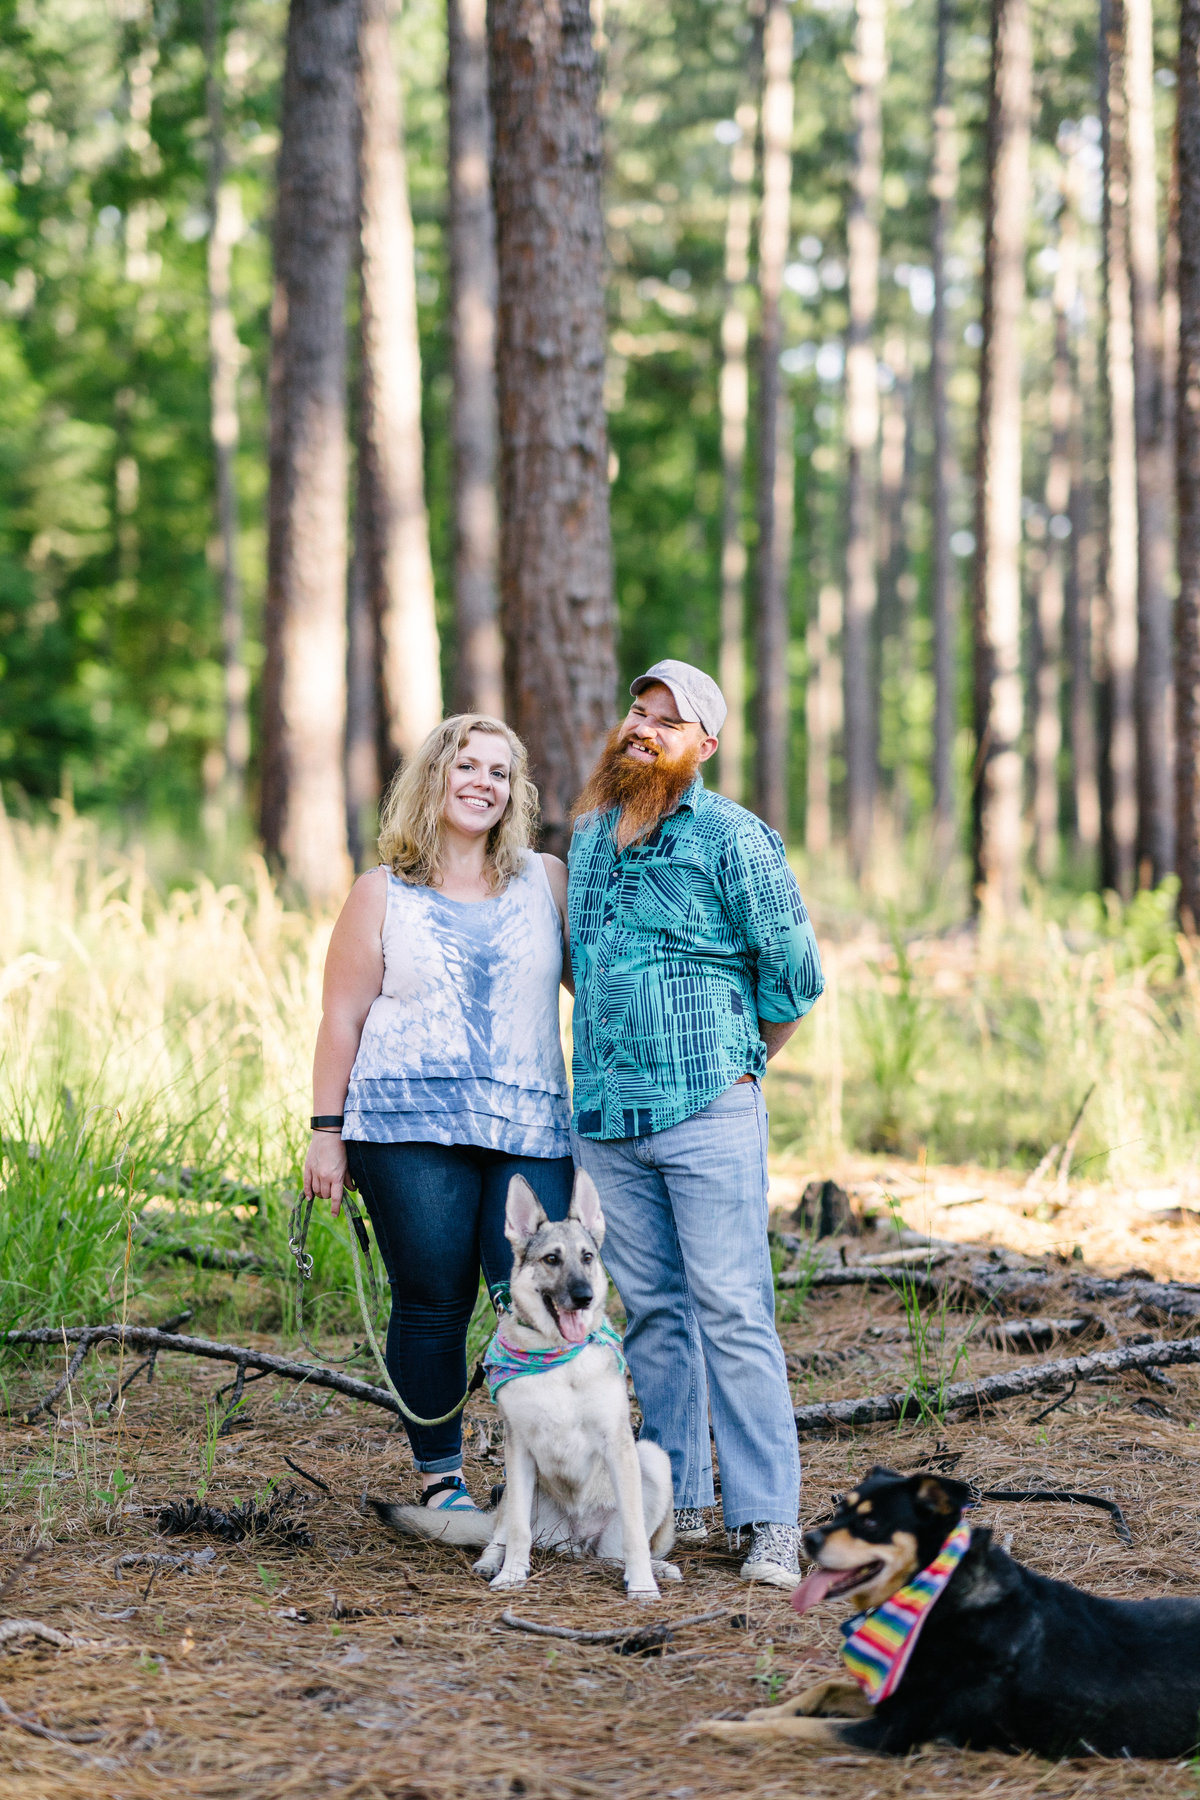 Kathy+Jonah|DukeForestPortraitSession-9